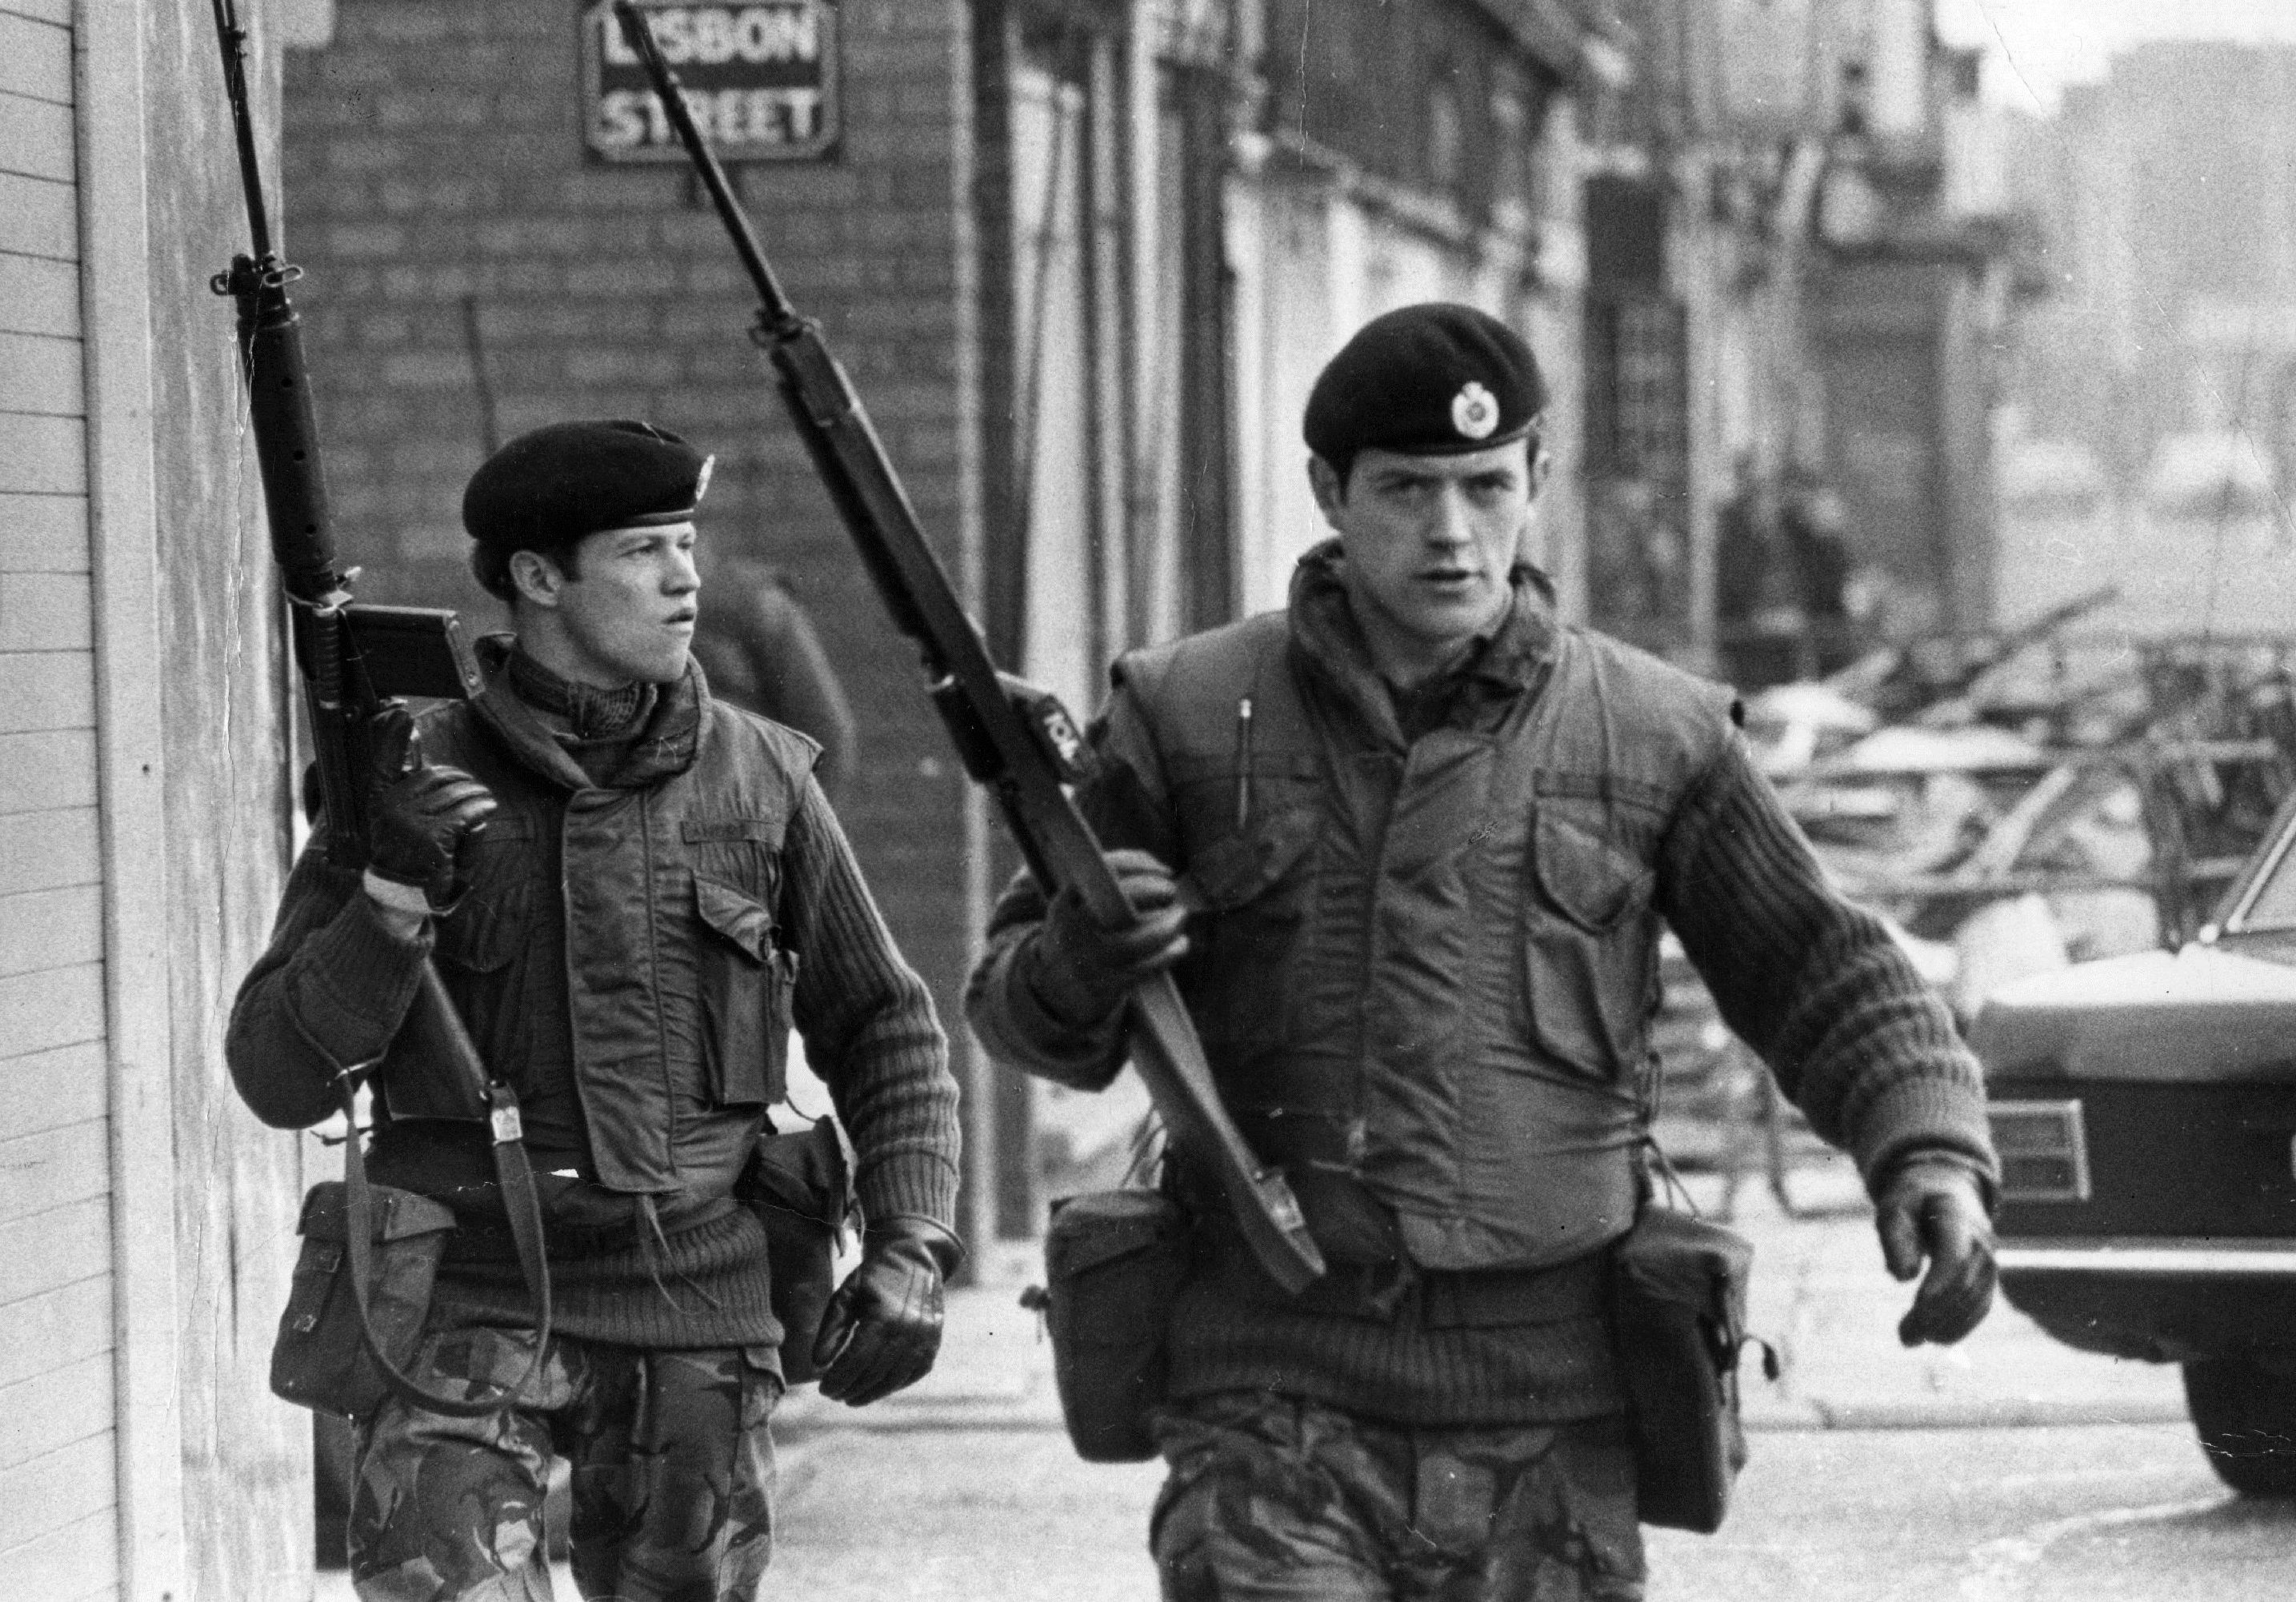 British soldiers on Lisbon Street, Belfast, during an IRA ceasefire in 1972